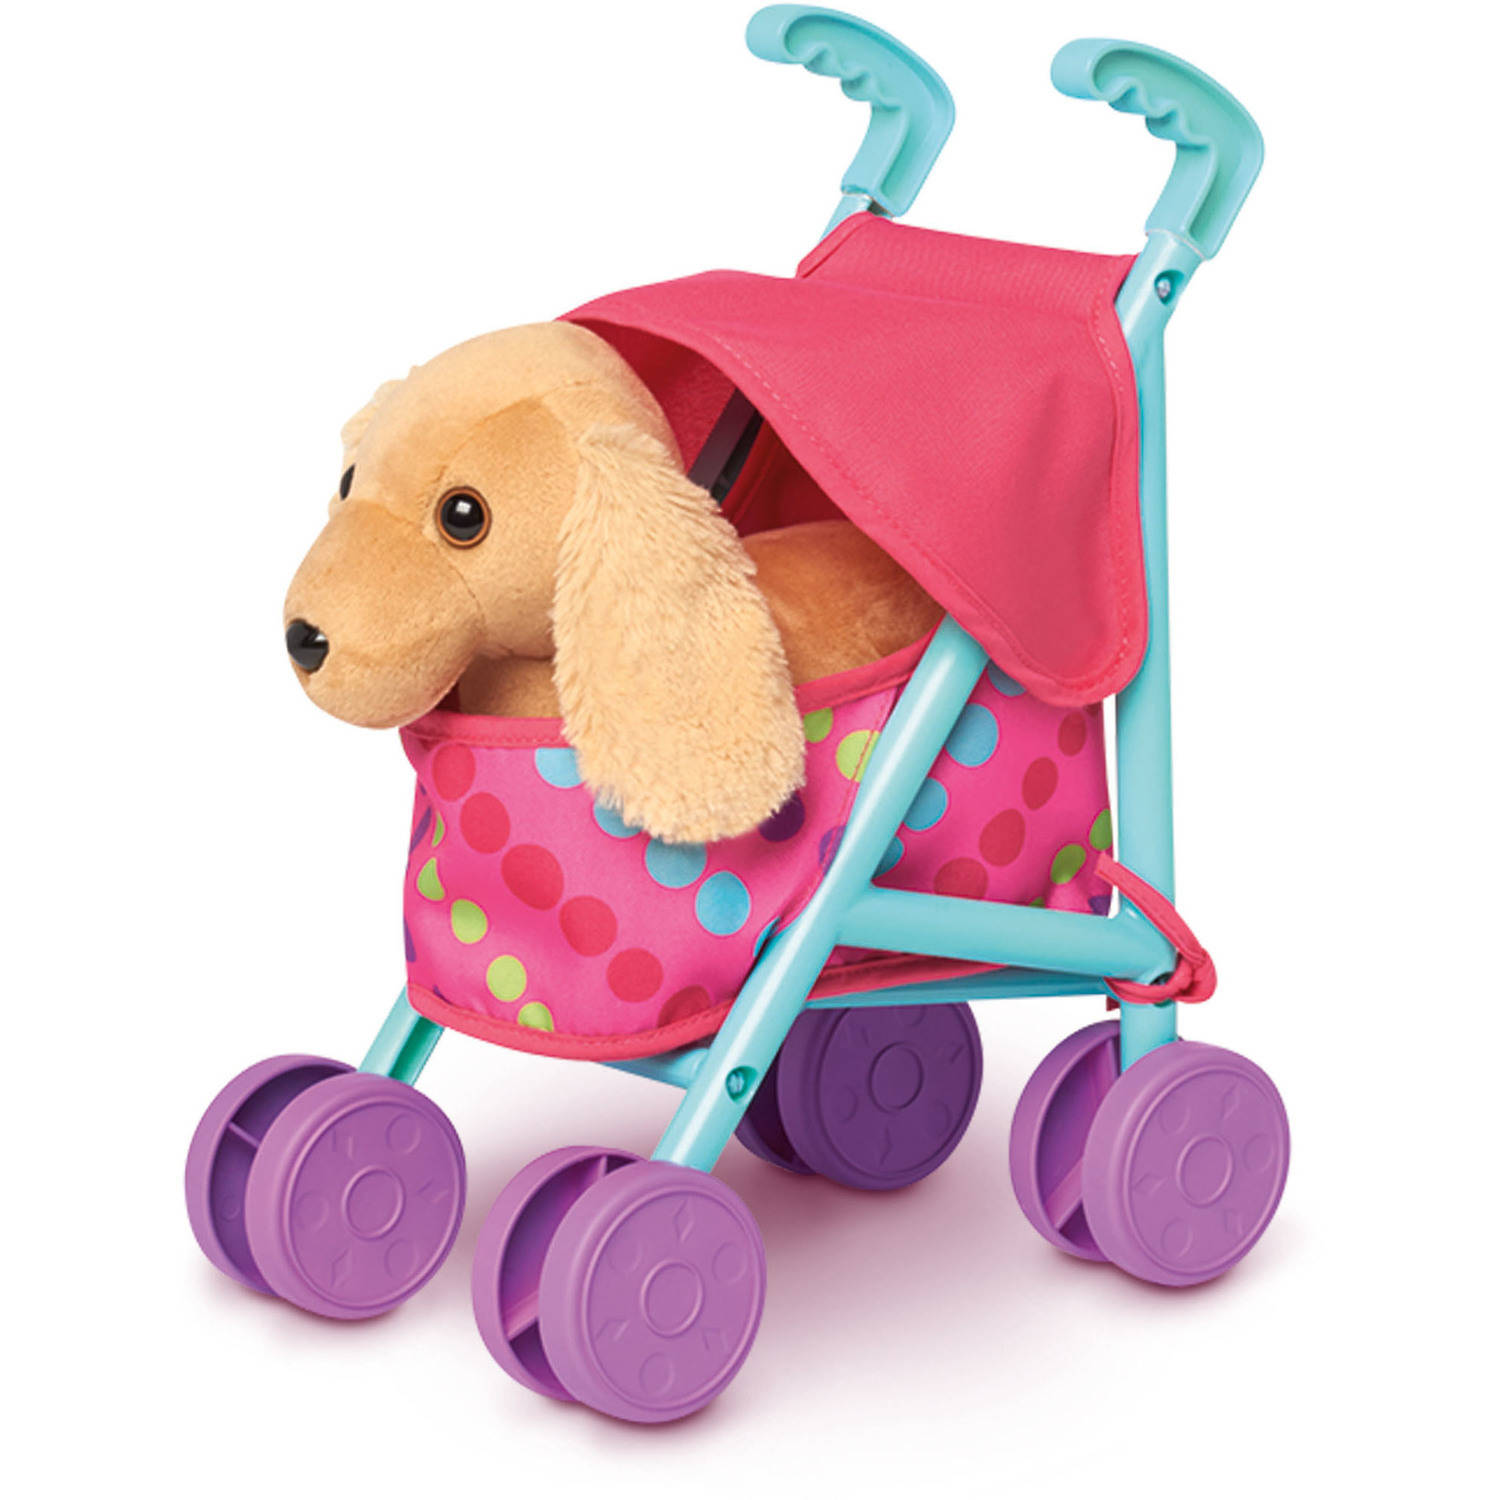 My Life As Dog and Stroller Set